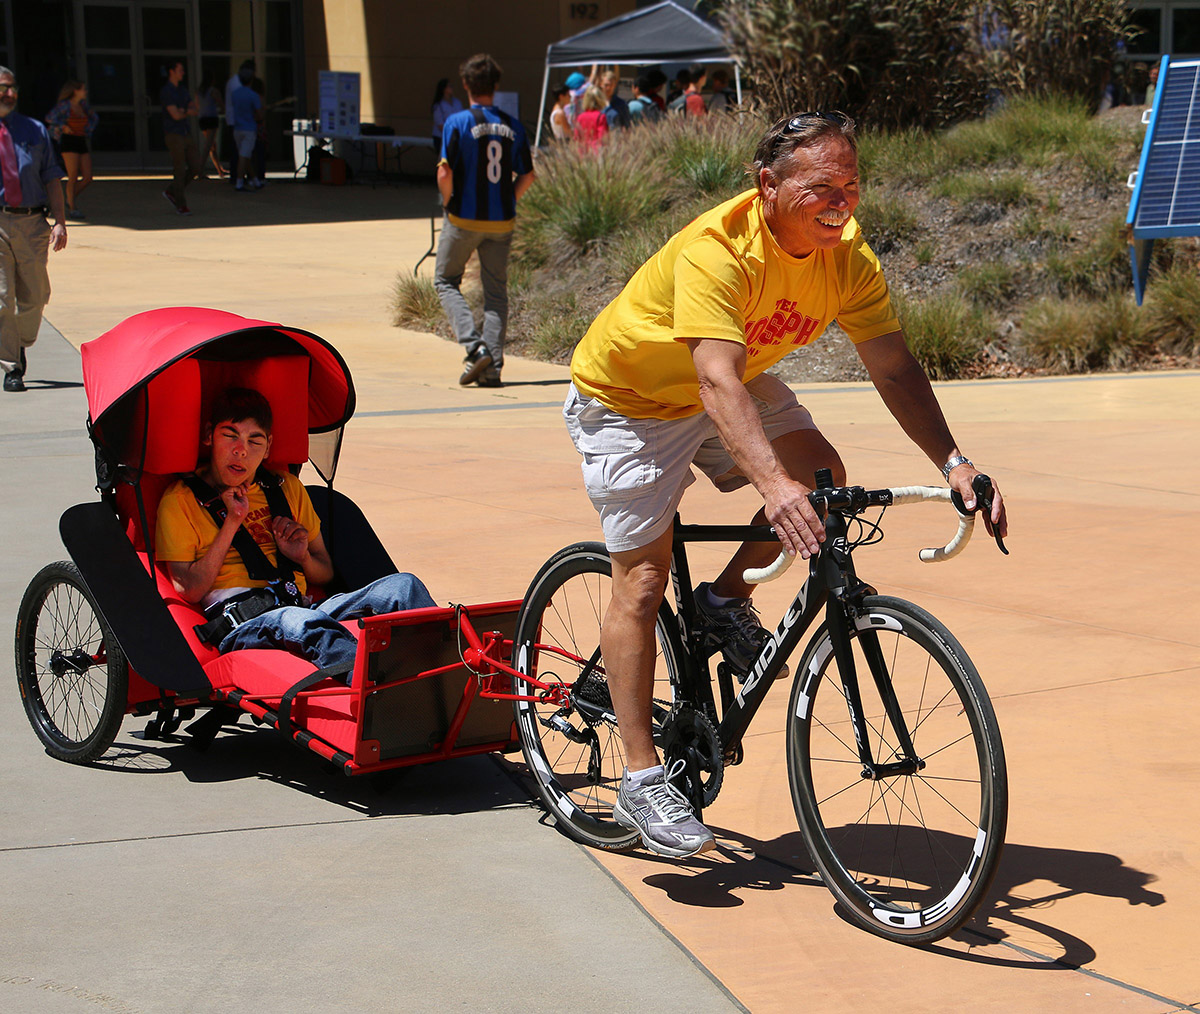 Joseph Cornelius rides in a bike trailer as his father leads the way on a bicycle during the Project Expo. The trailer was designed and built by Cal Poly mechanical engineering students. Father and son will participate in the annual SLO Triathlon on Sunday, July 22.